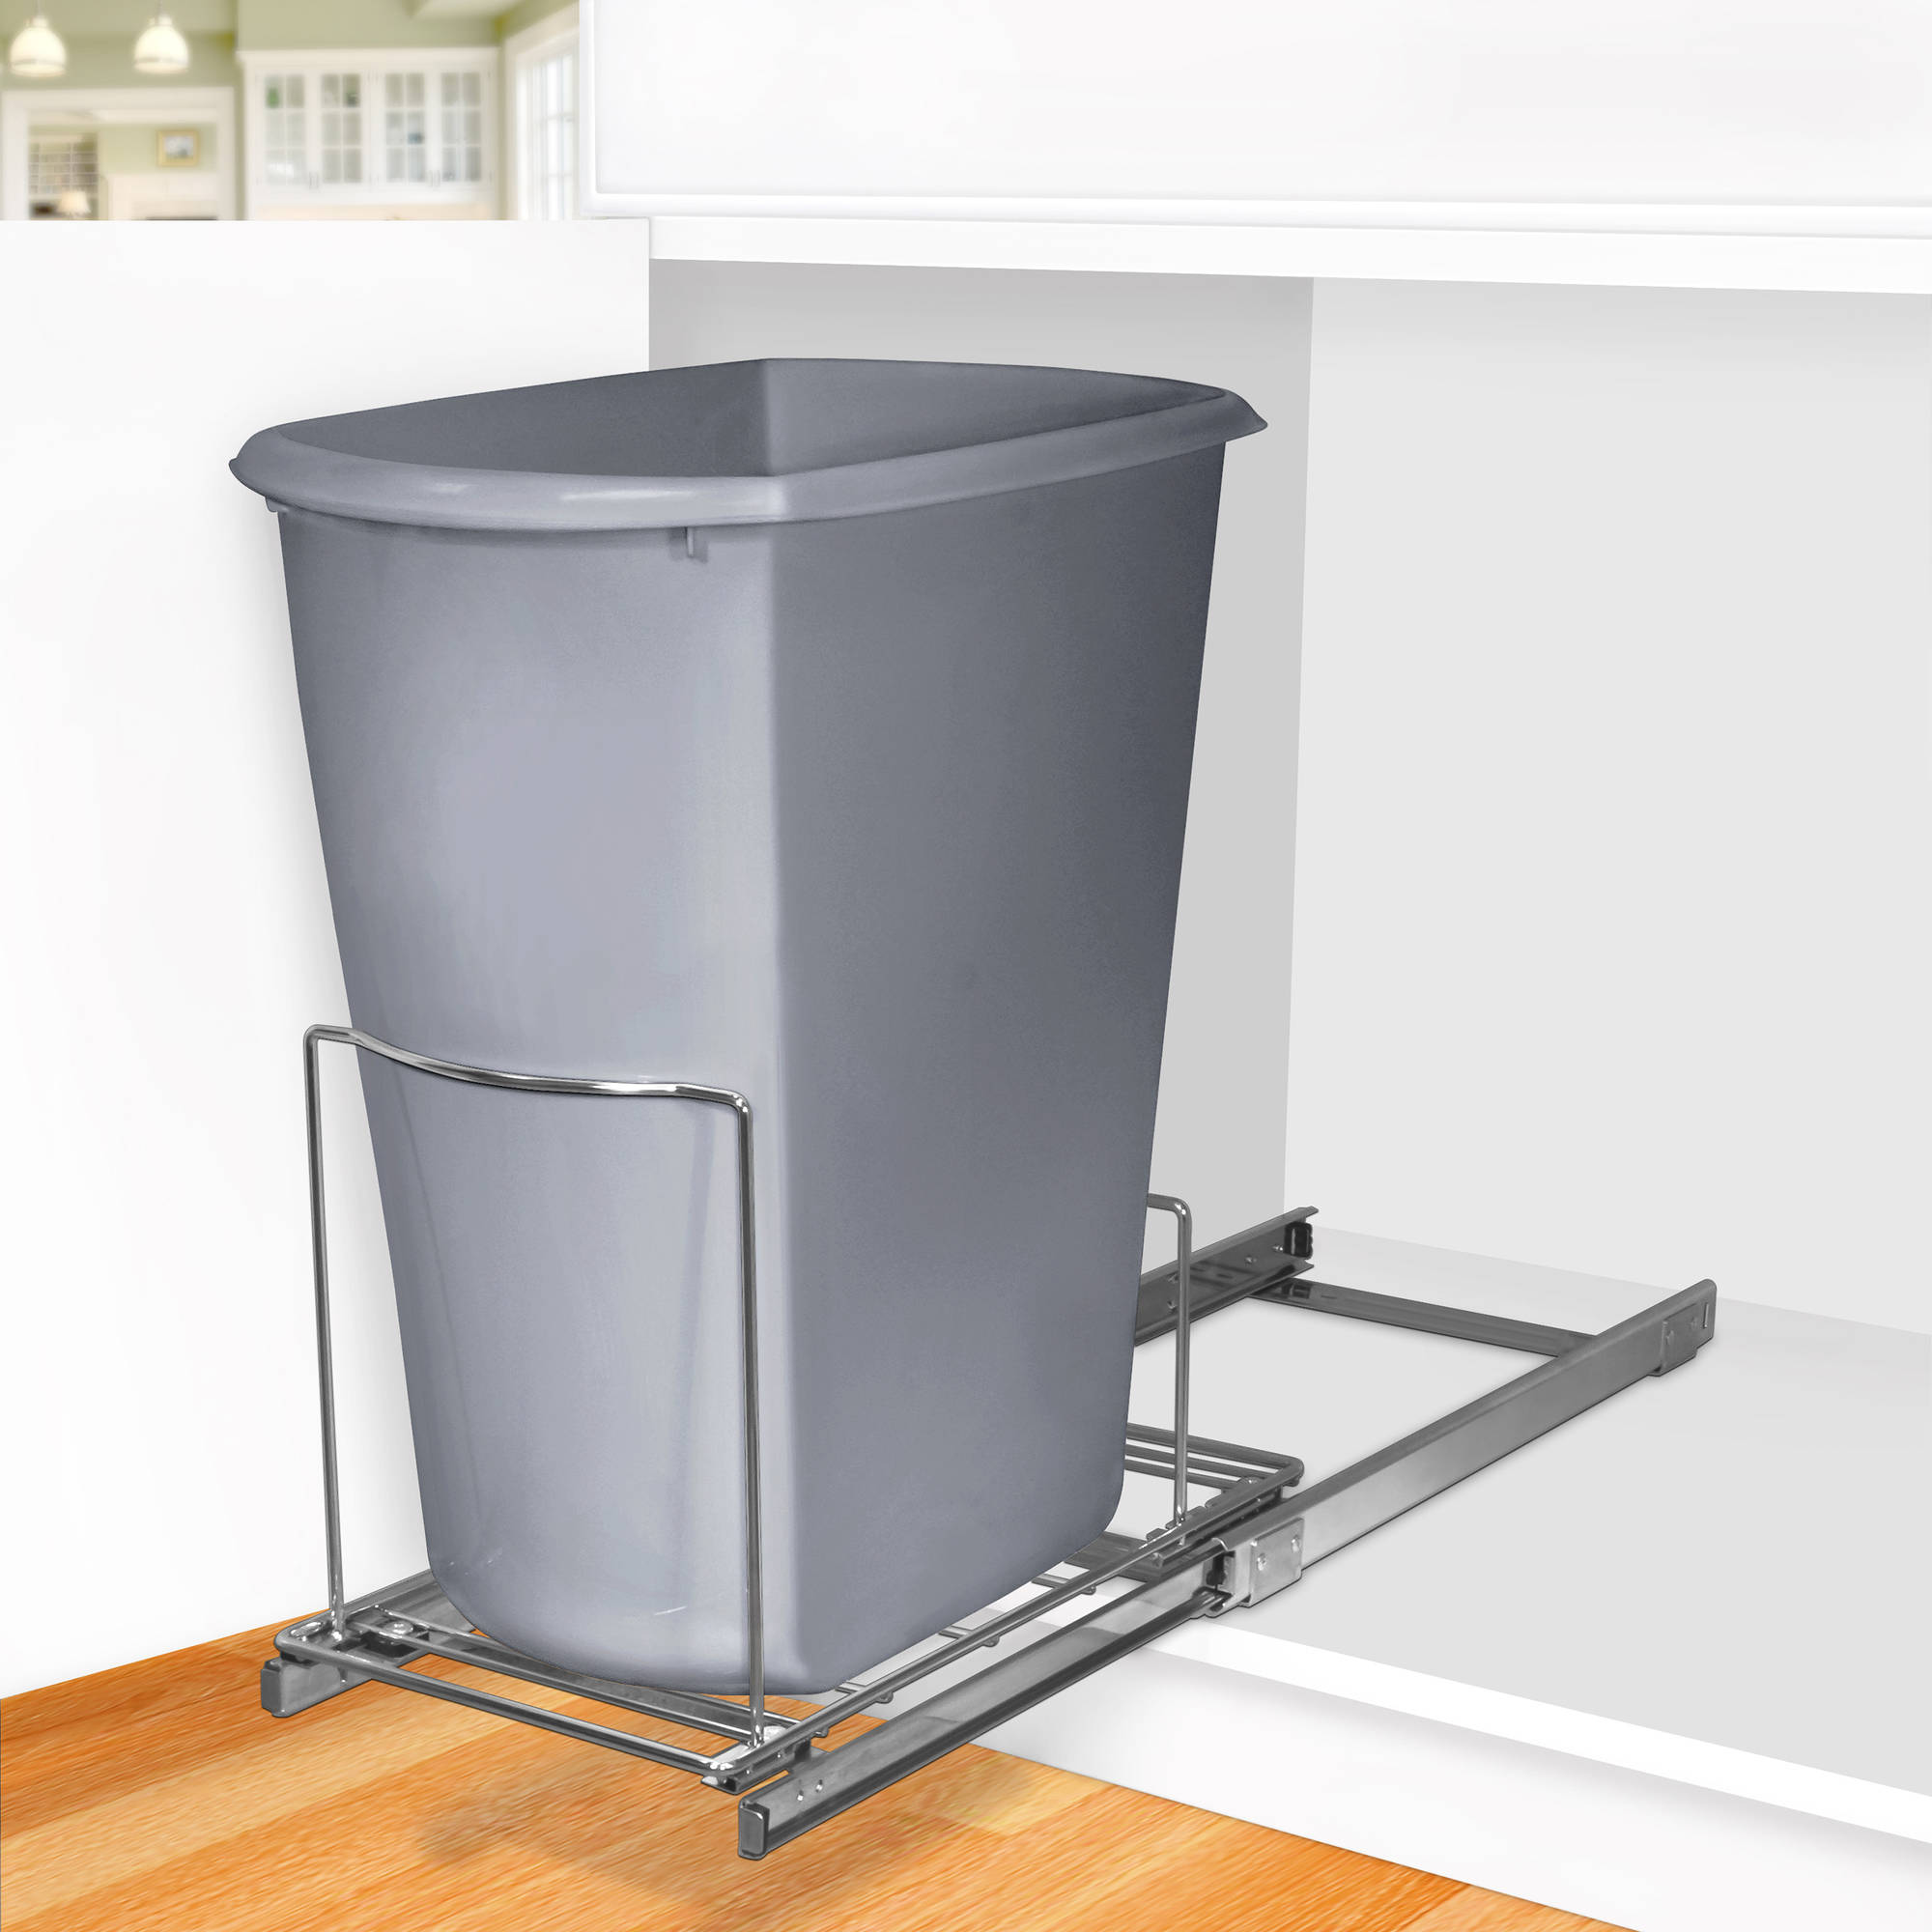 Lynk Roll Out Double Shelf: Lynk Professional Roll Out Under Sink Cabinet Organizer